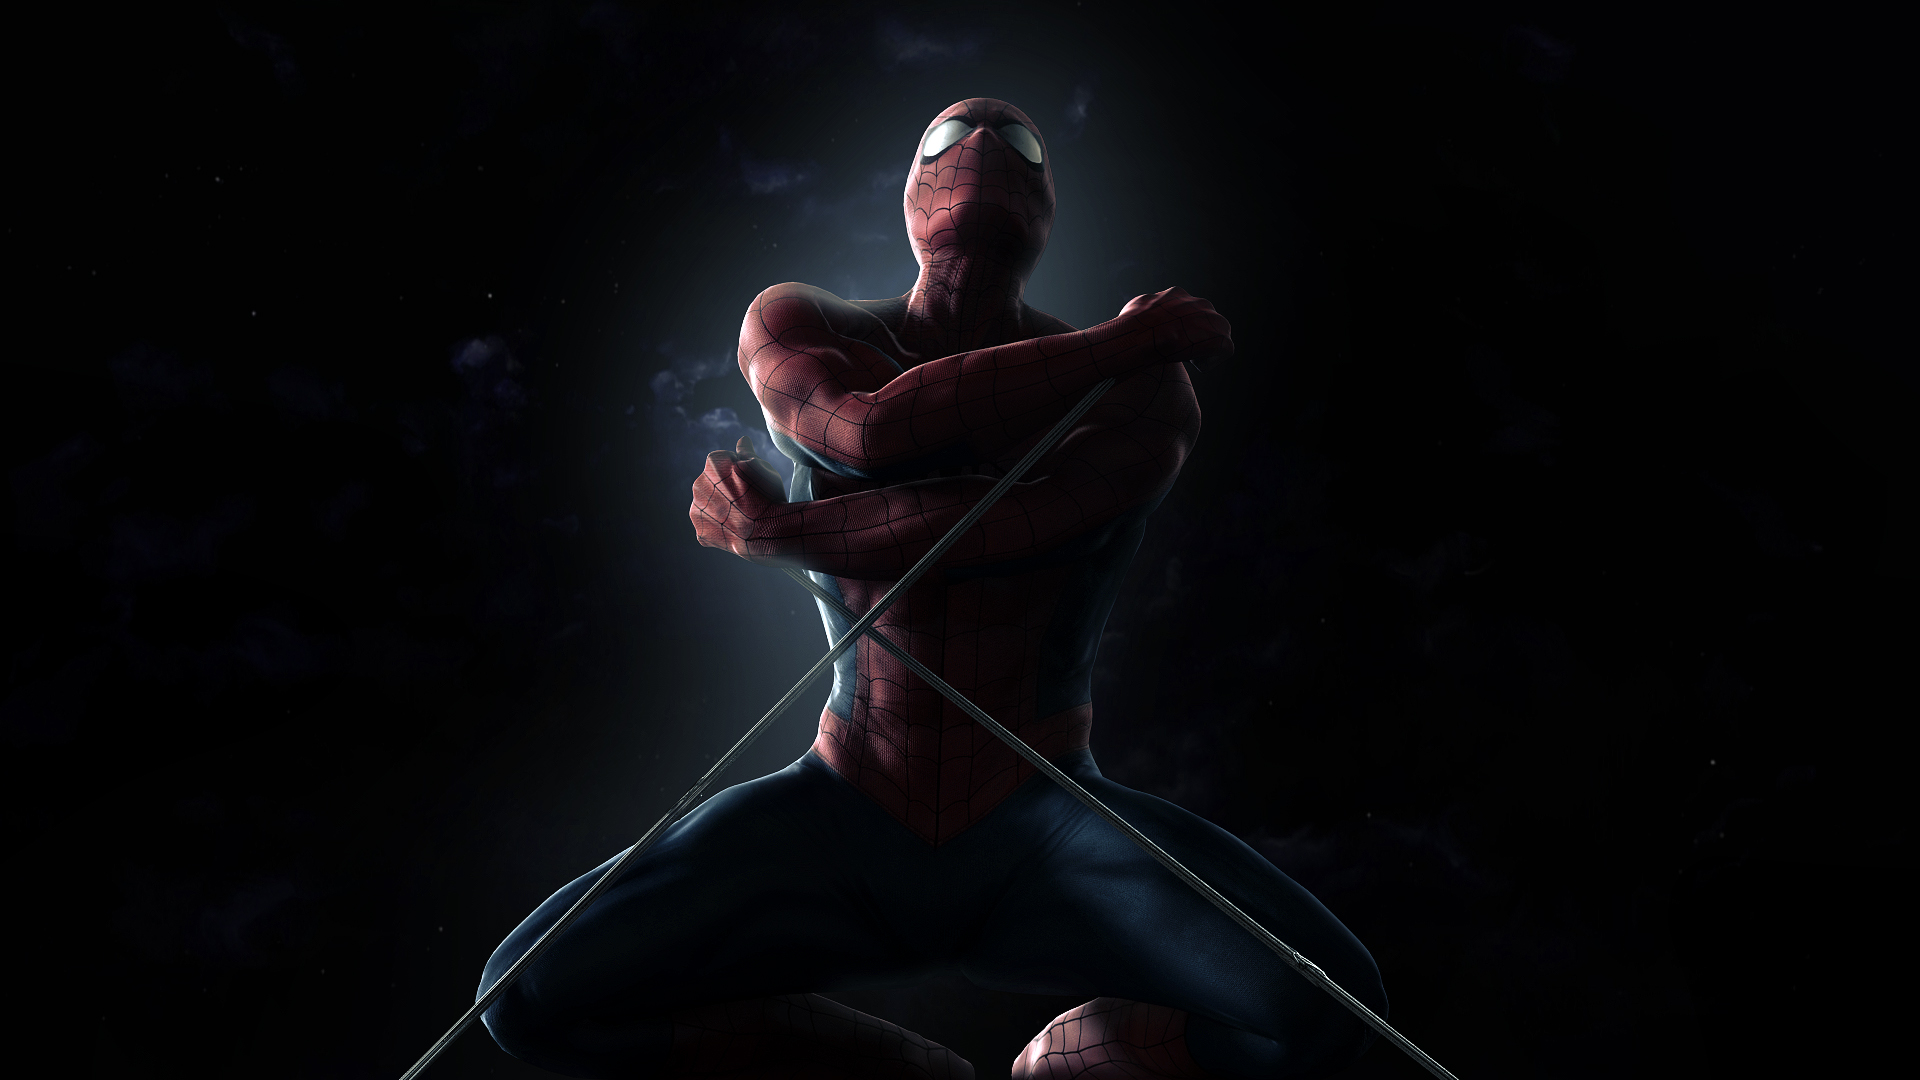 Spiderman 3D Movies Wallpaper Download Wallpaper with 1920x1080 1920x1080